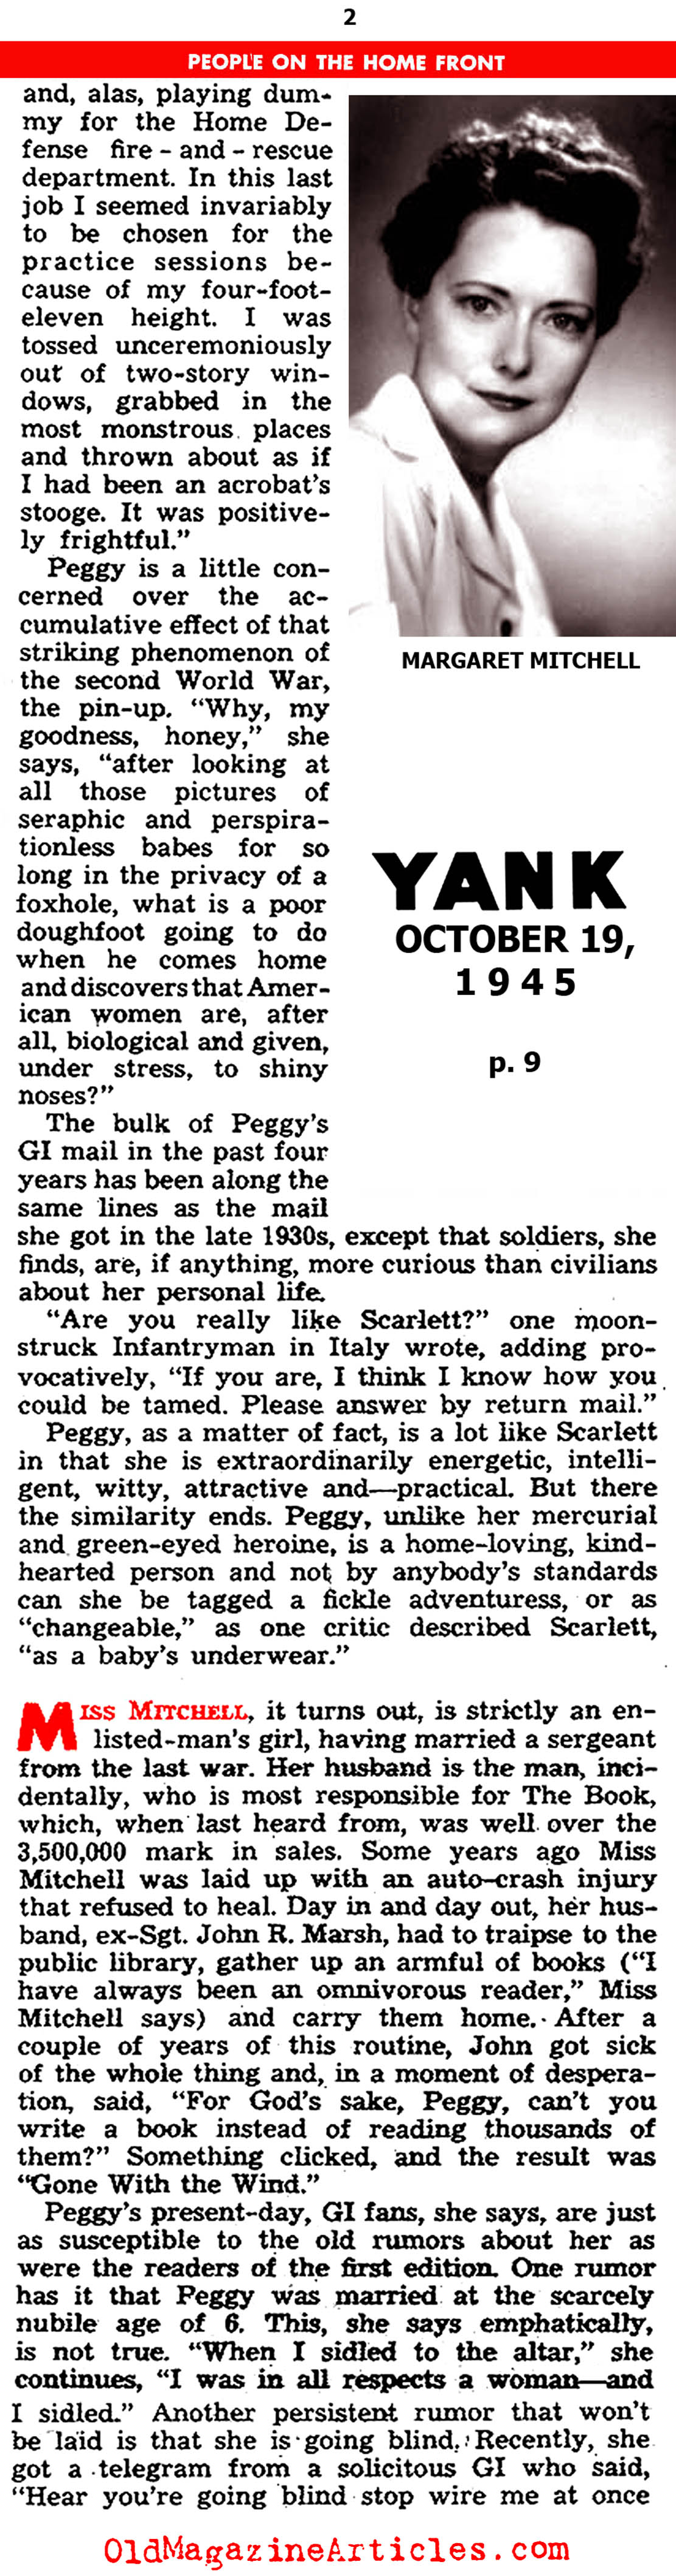 An Interview with the Author  (Yank Magazine, 1945)